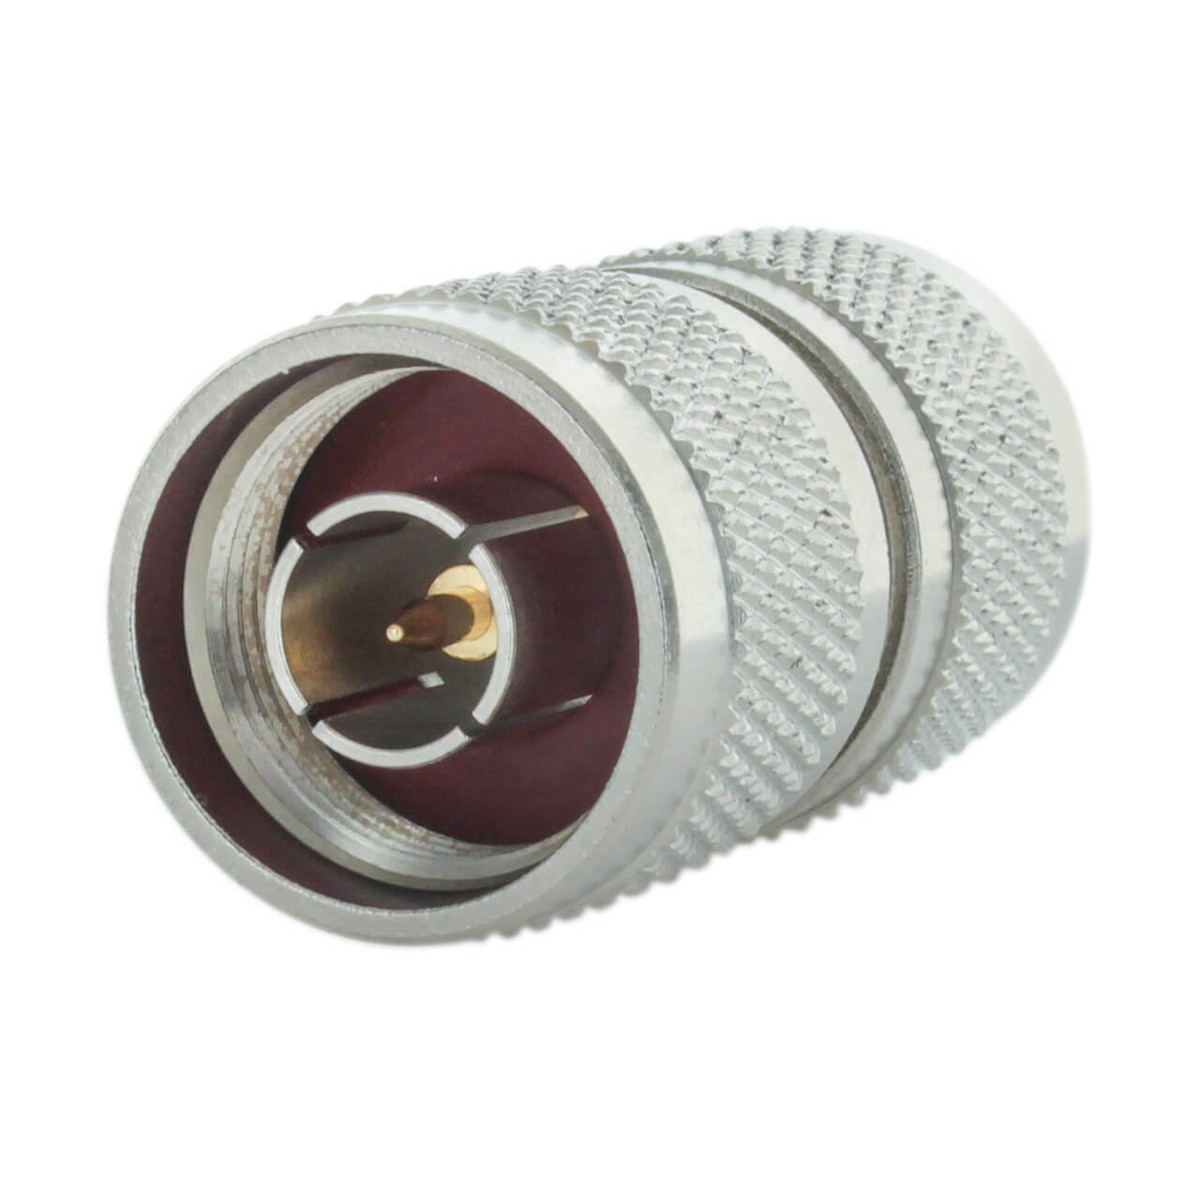 Bolton Tech Bolton Technical N-Male to N-Male Barrel Connector